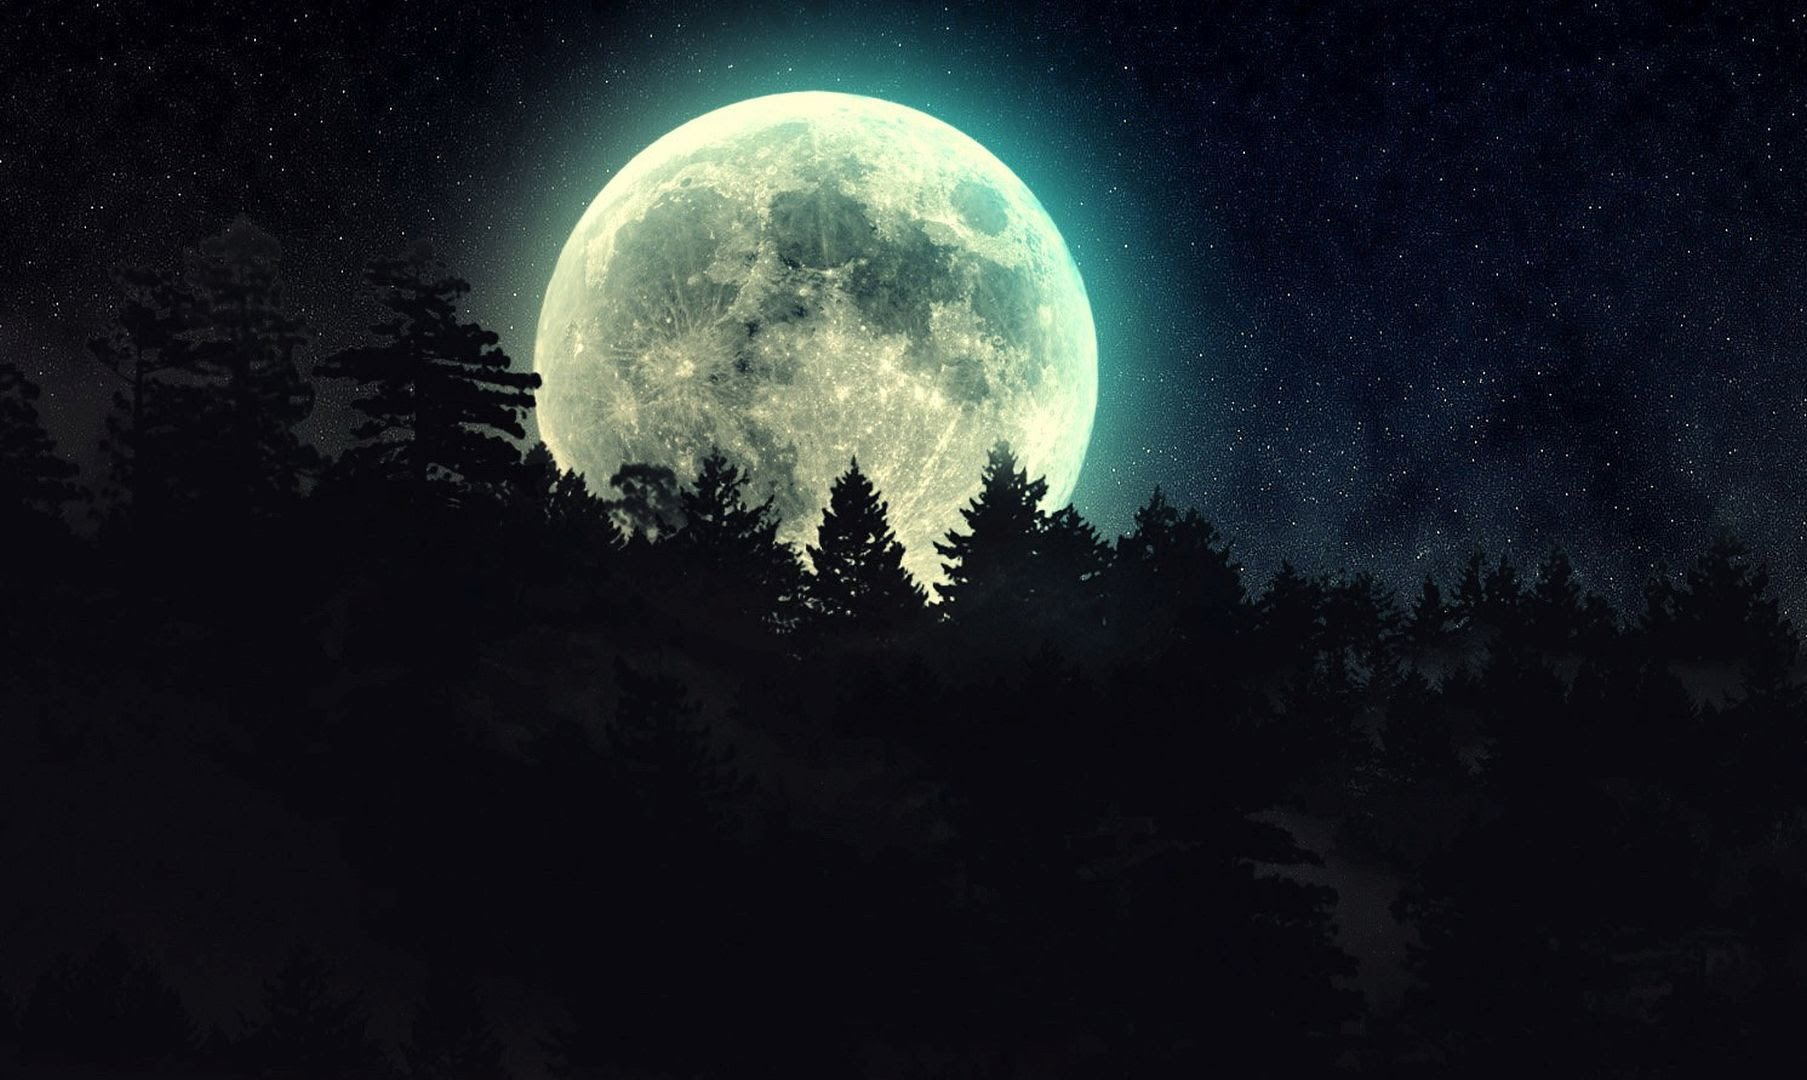 pic_for_song_of_the_night.jpg